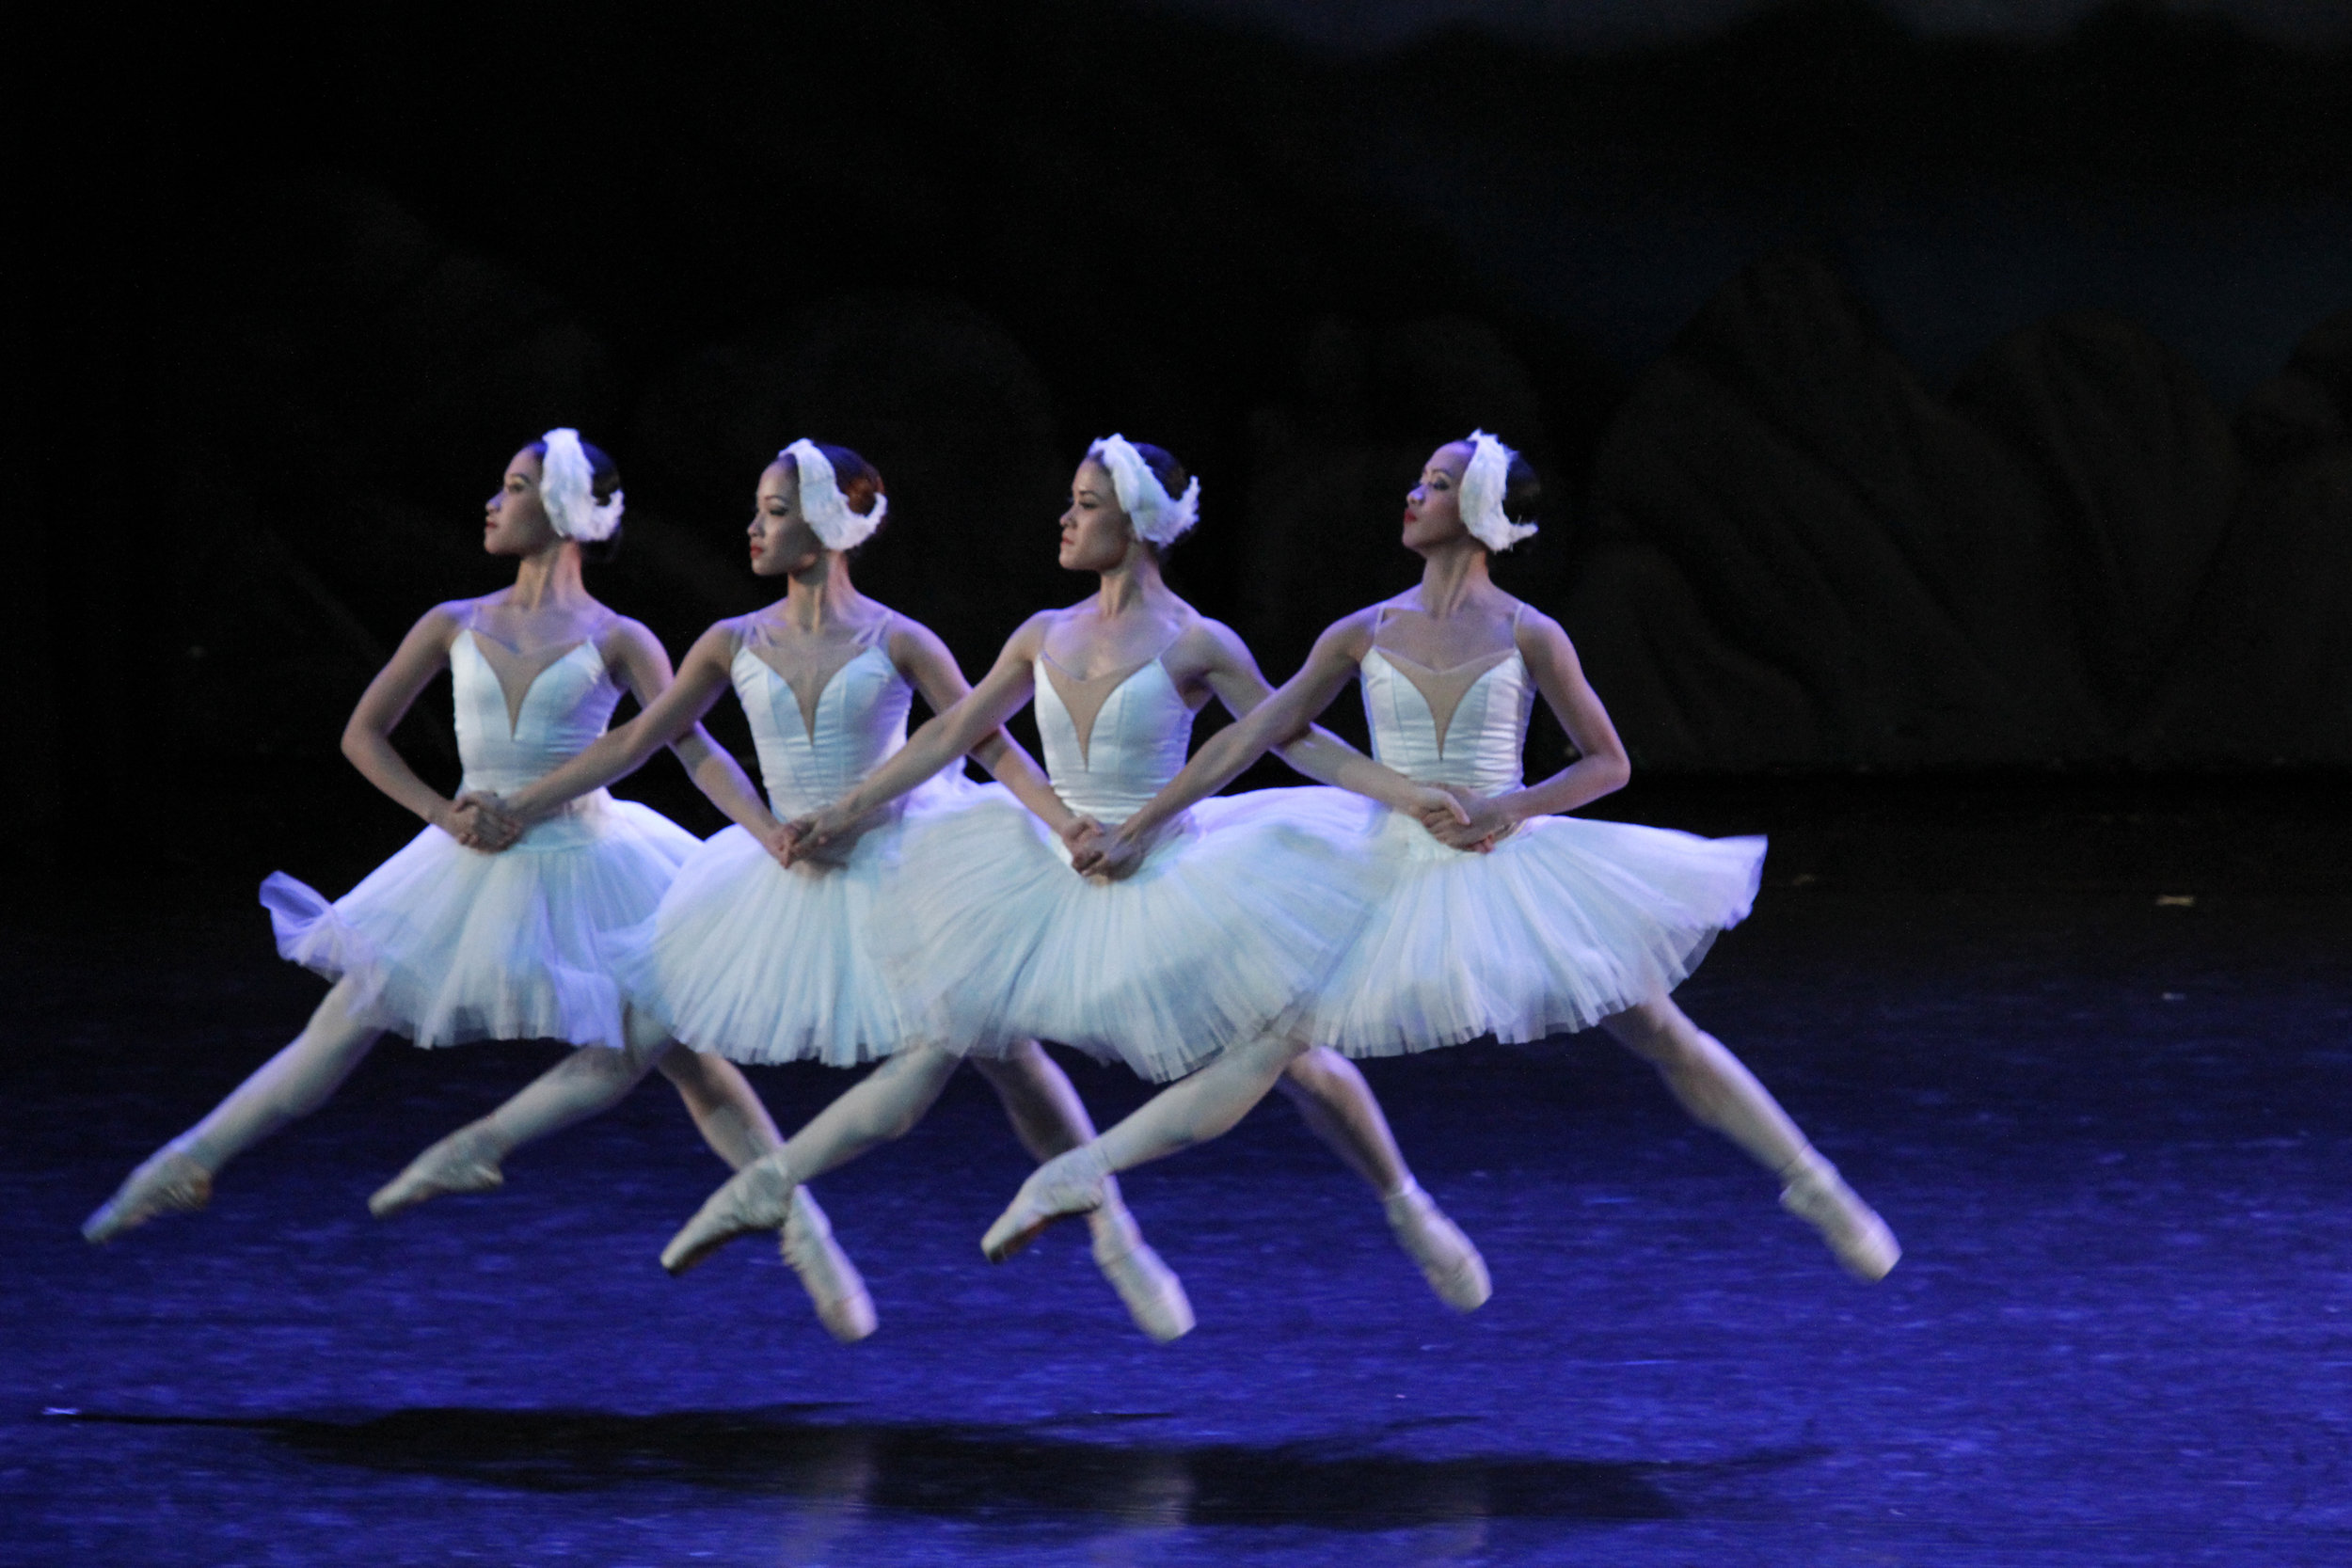 """Jessica Pearl Dames, Jasmine Pia Dames, Tiffany Chiang-Janolo and Jessa Balote are featured in the well-known """"Dance of the Cygnets"""" from    Swan Lake   . Photo by Ocs Alvarez"""